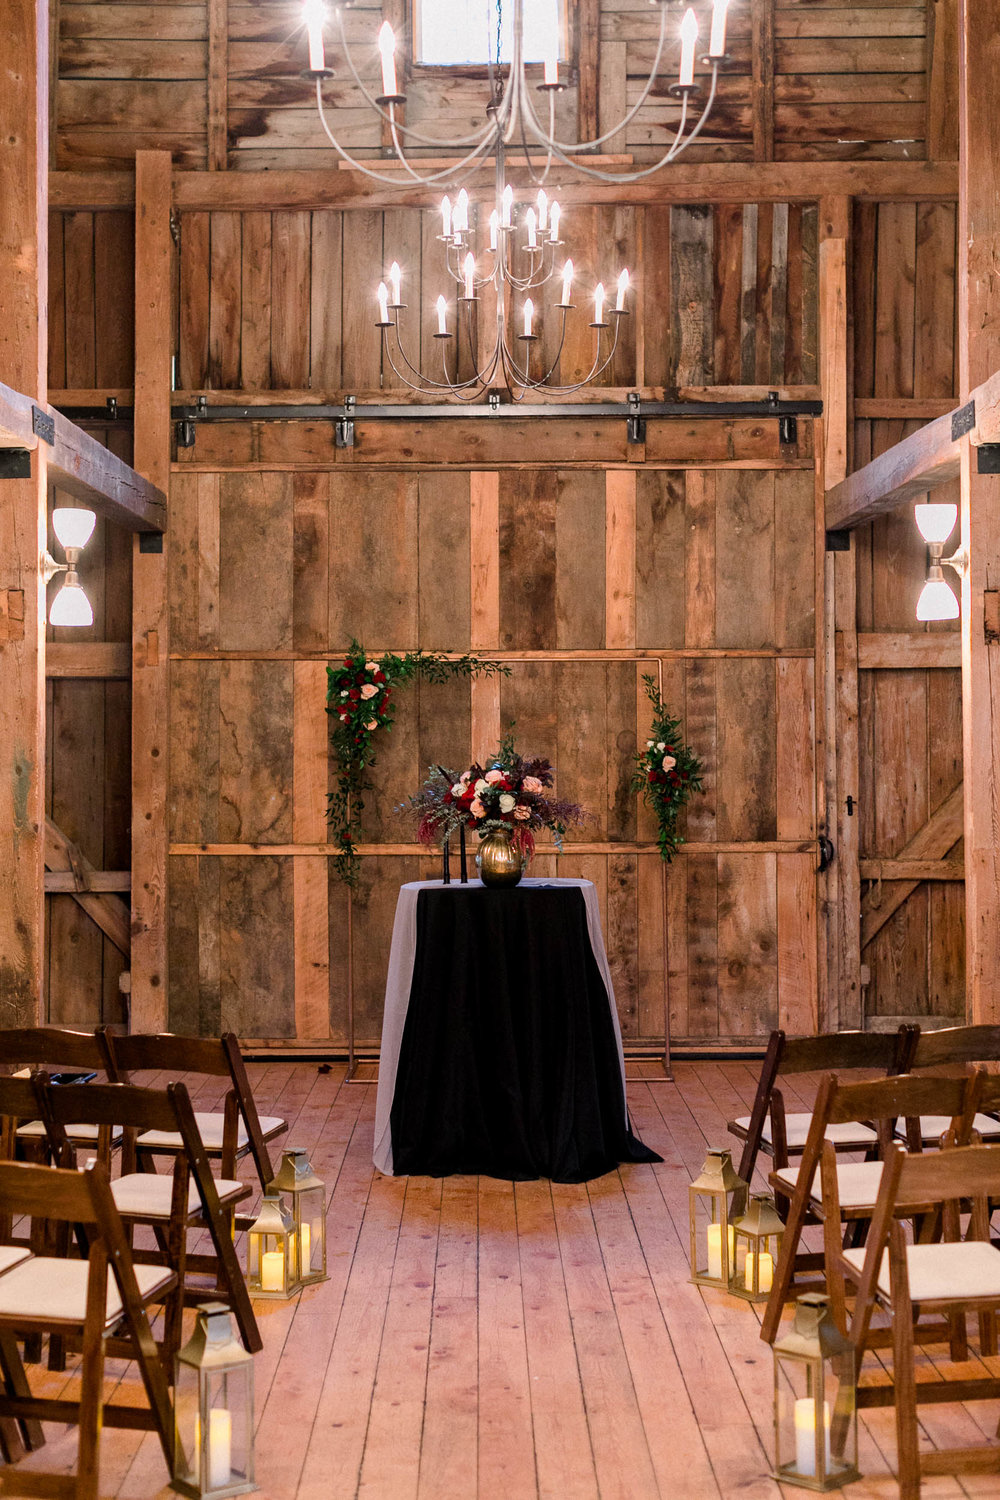 J+J_Barn at Walnut Hill_Portland Maine Wedding_Buena Lane Photography_102718_ER_242-Edit.jpg